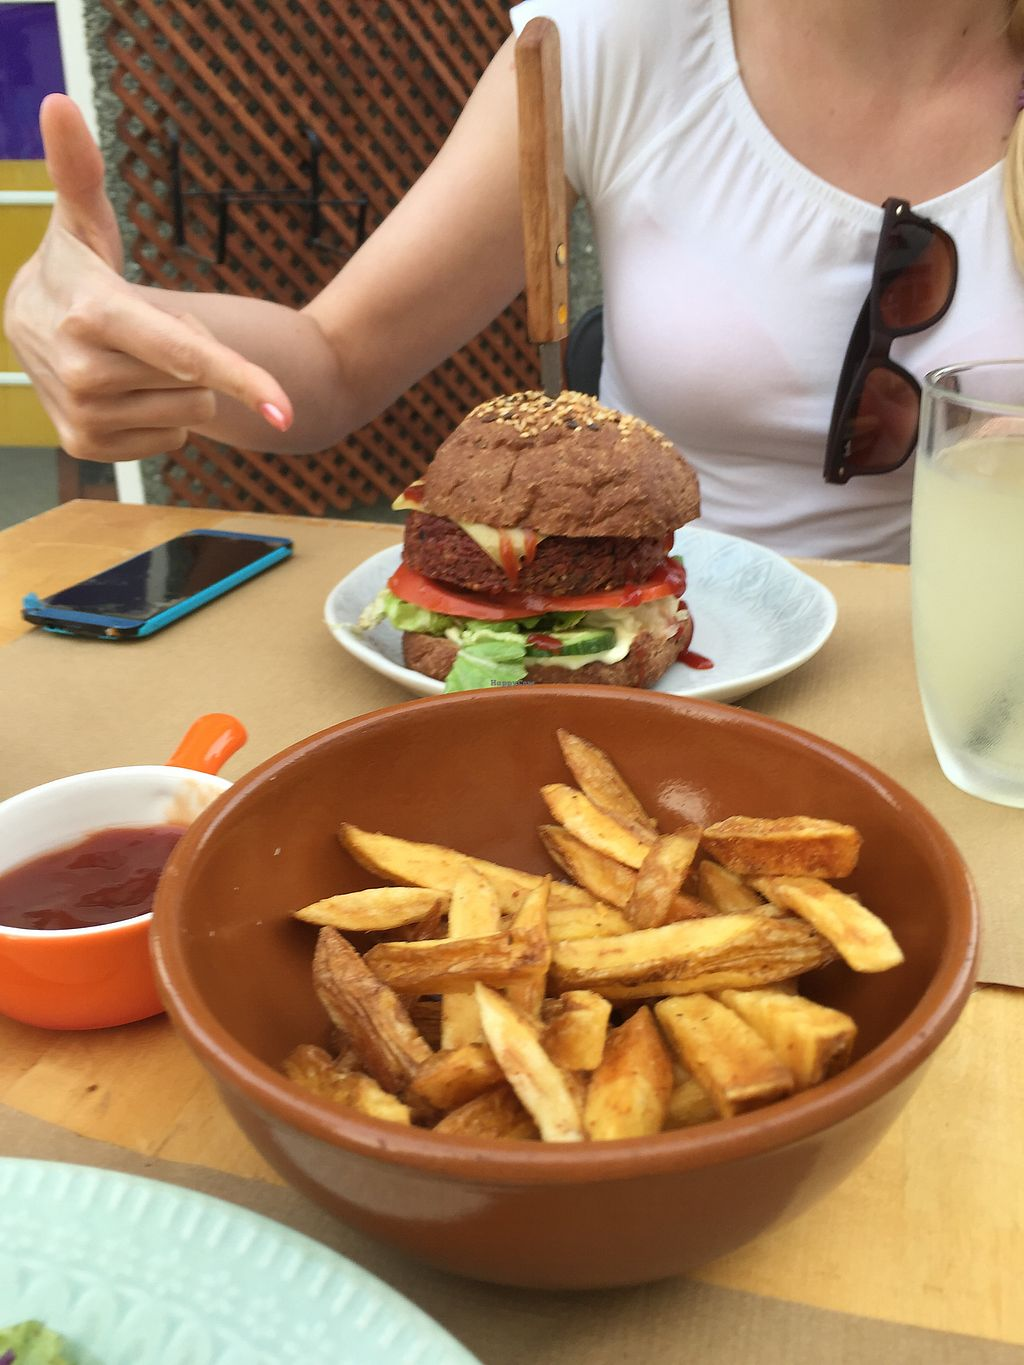 """Photo of D.Sanchez Fresh Food  by <a href=""""/members/profile/Loviedovie"""">Loviedovie</a> <br/>quinoa-patty burger <br/> July 20, 2017  - <a href='/contact/abuse/image/60375/282406'>Report</a>"""